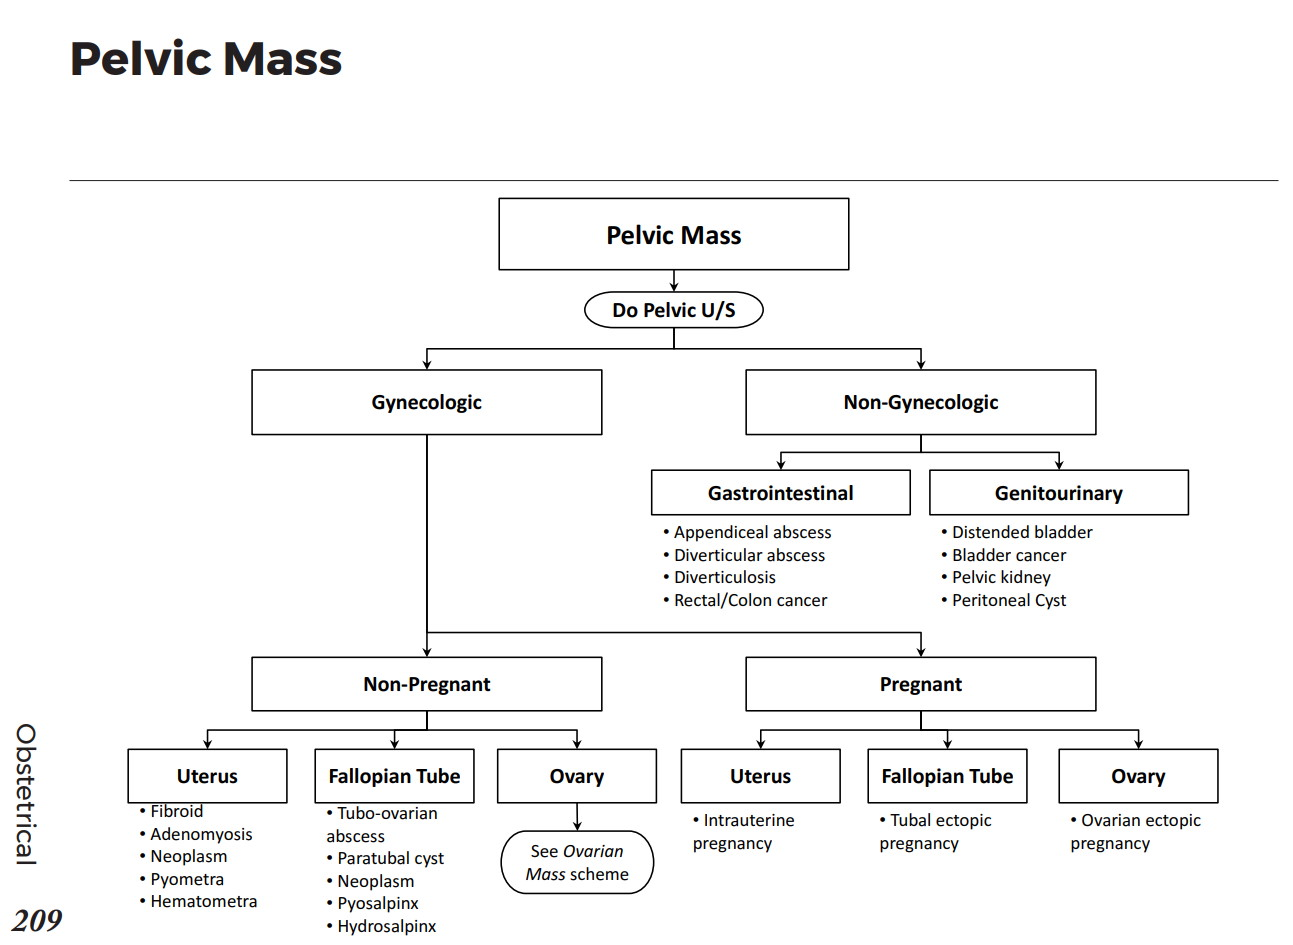 Causes Of Pelvic Mass Differential Diagnosis Algorithm Gastrointestinal Appendiceal Abscess